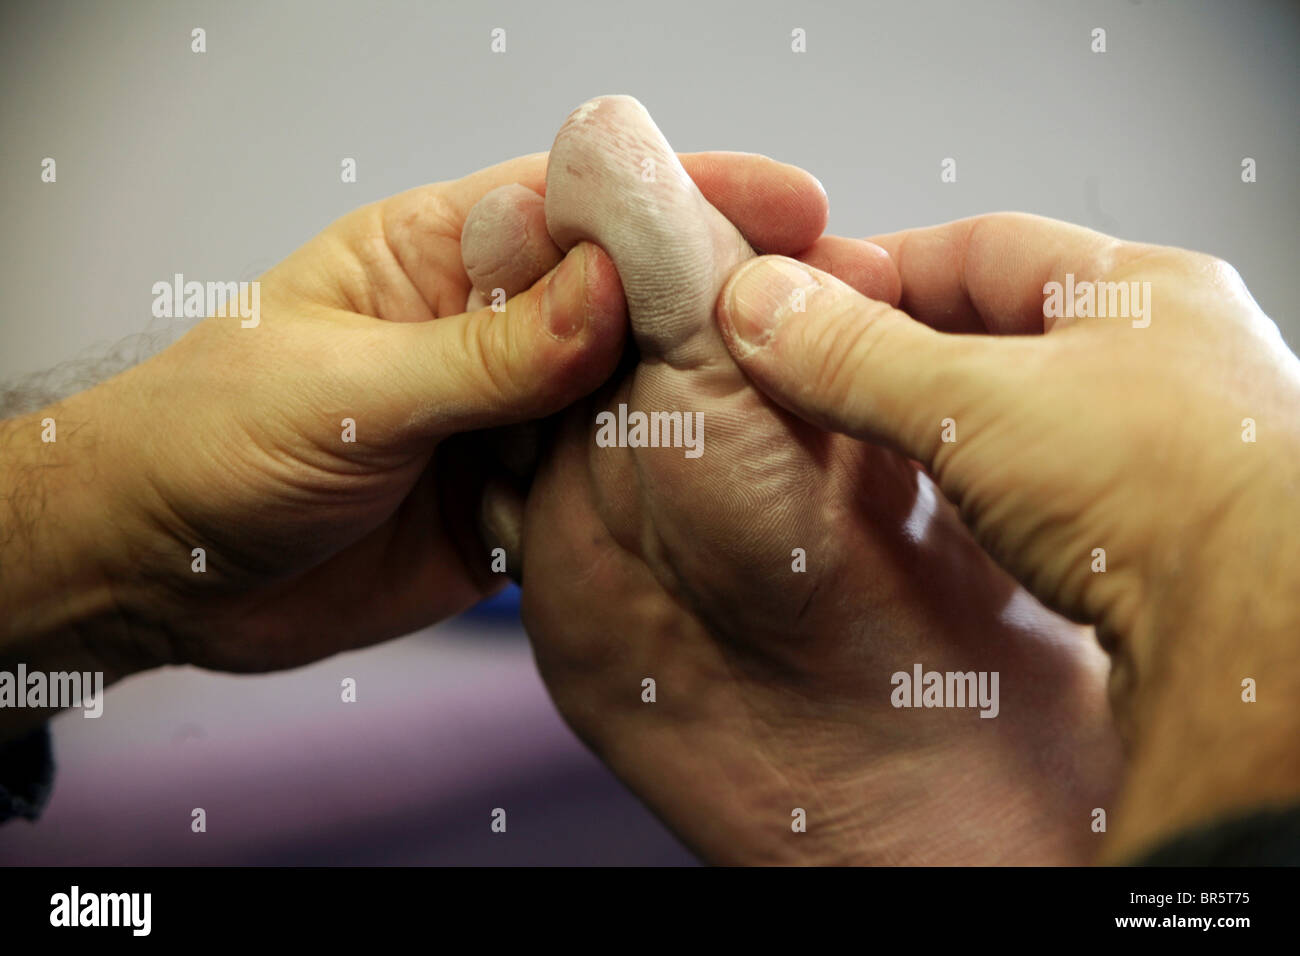 Performing an acupressure foot massage, a traditional Chinese medicine technique. - Stock Image